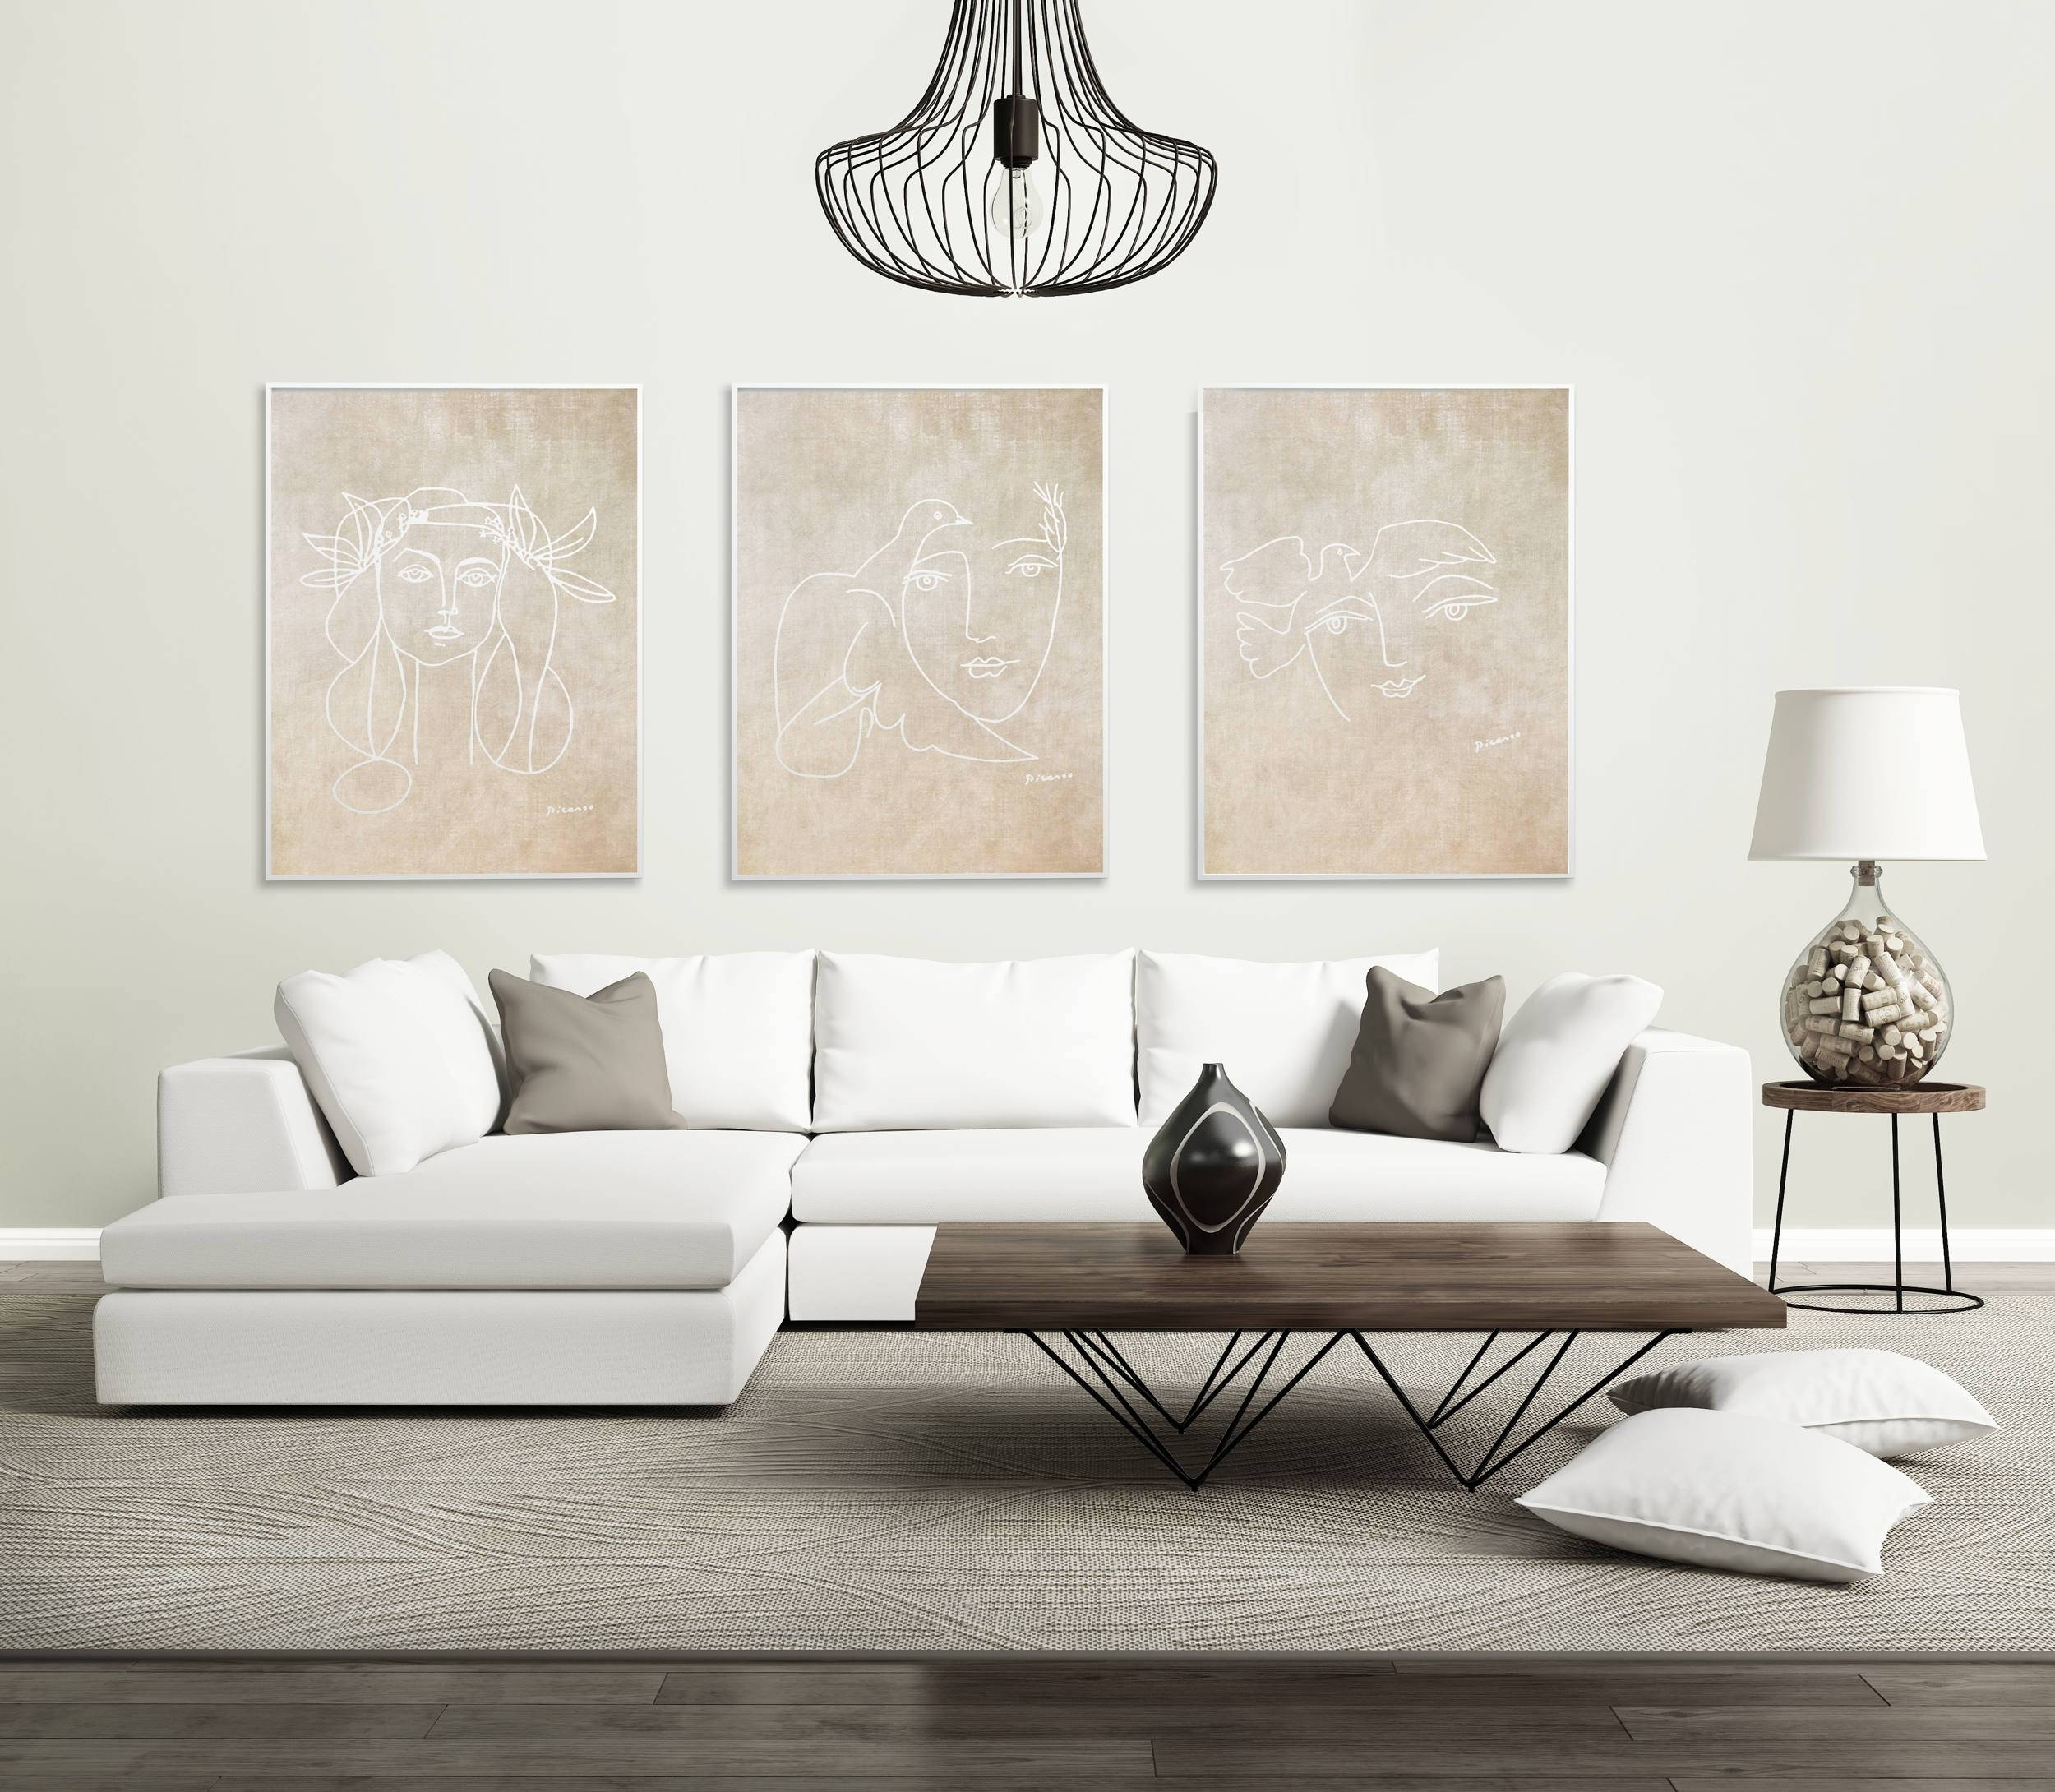 2018 Best Of Neutral Wall Art Pertaining To Most Popular Neutral Abstract Wall Art (View 1 of 20)